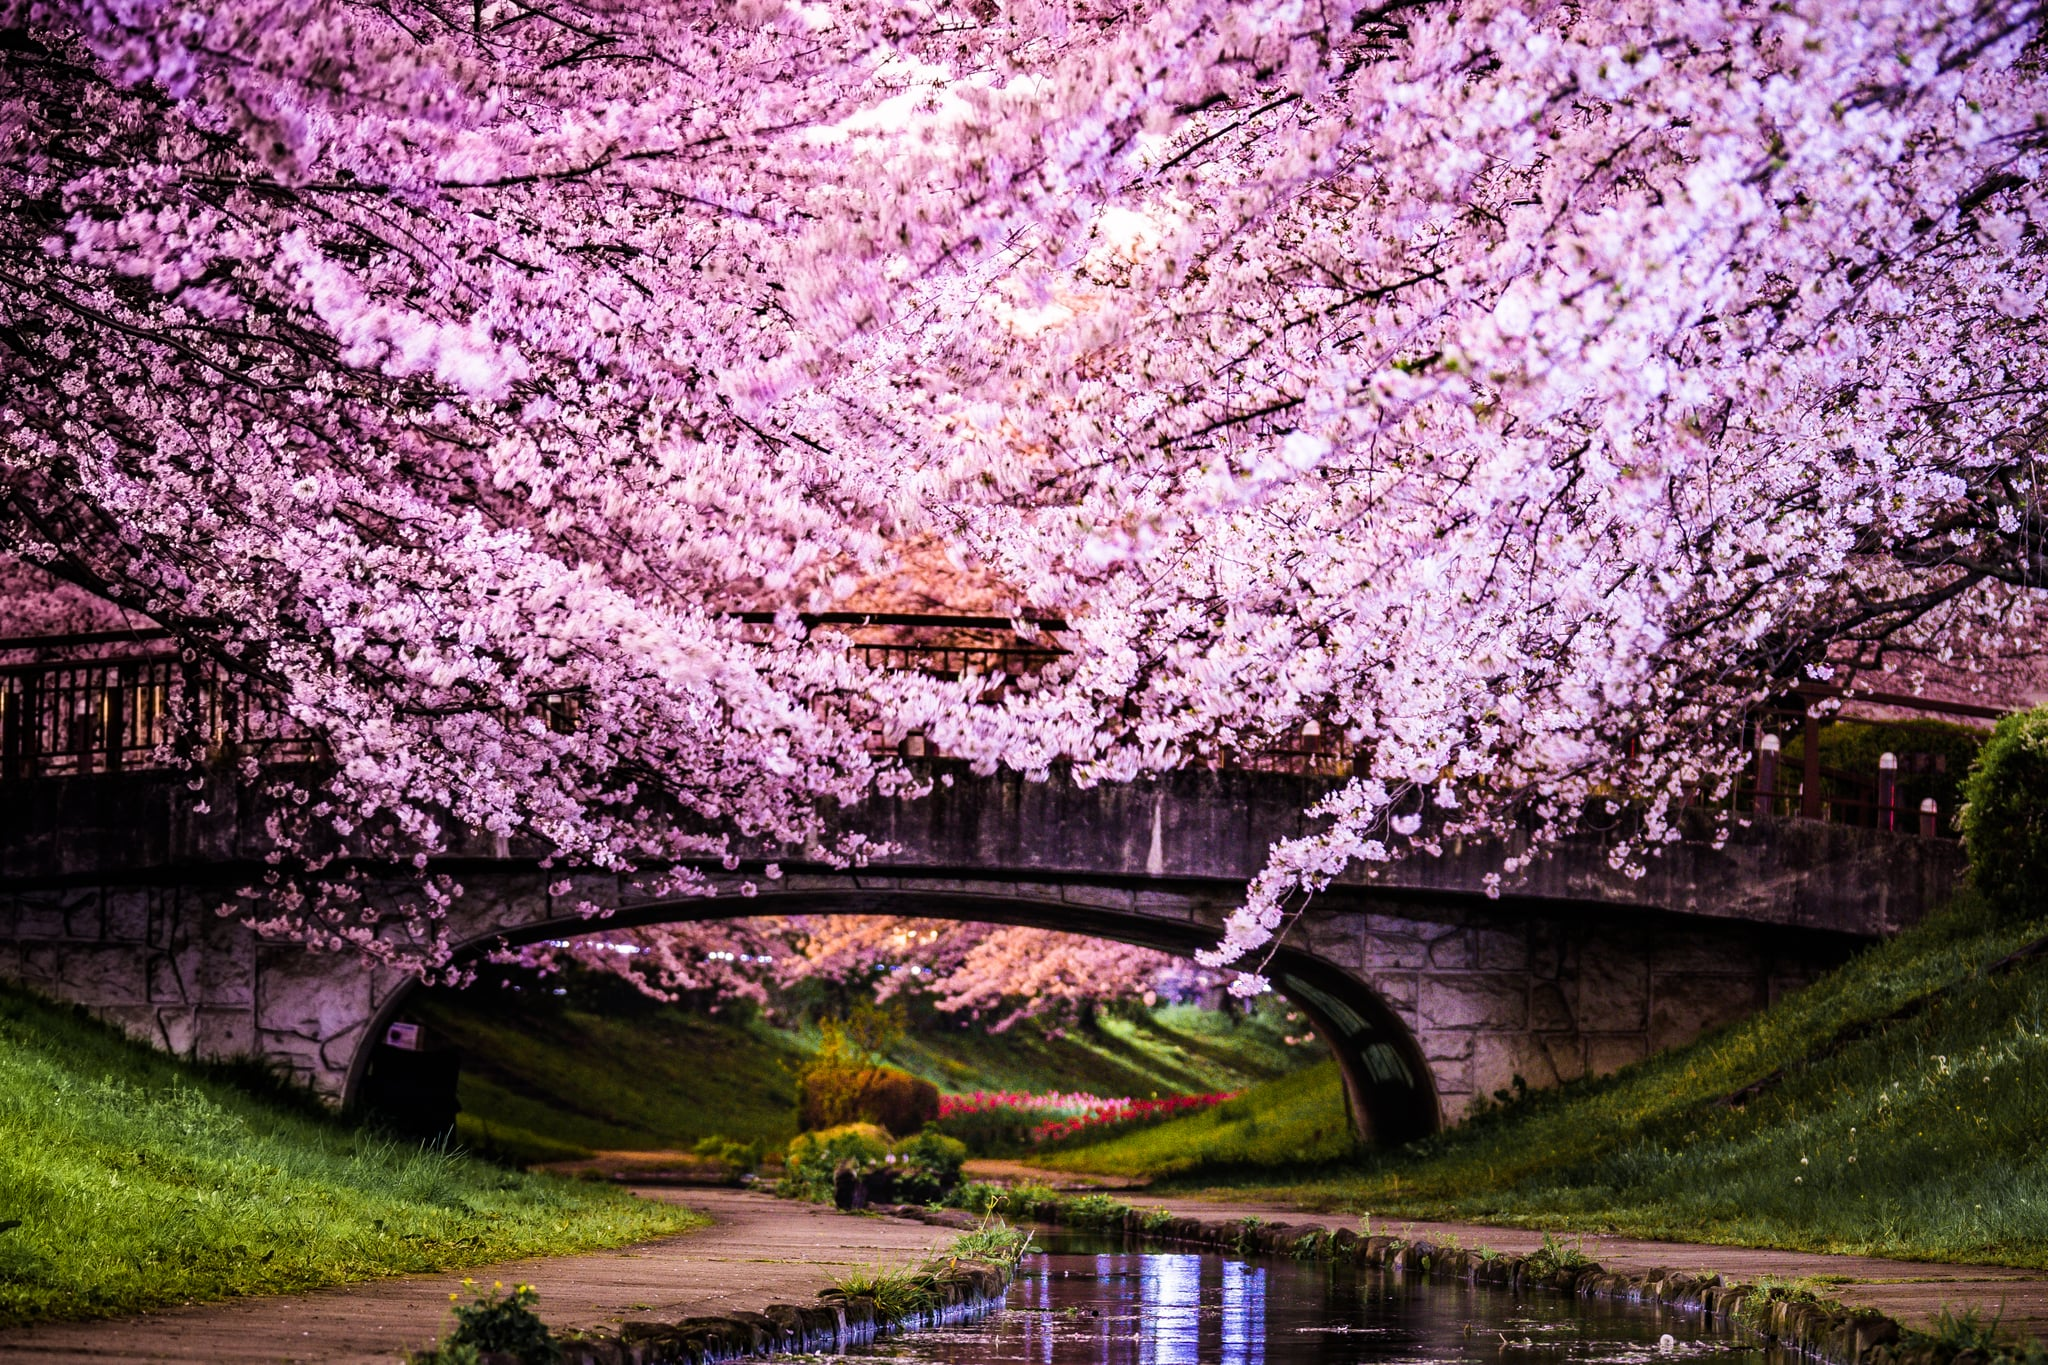 Japanese cherry blossom tree pictures Cherry blossom pictures